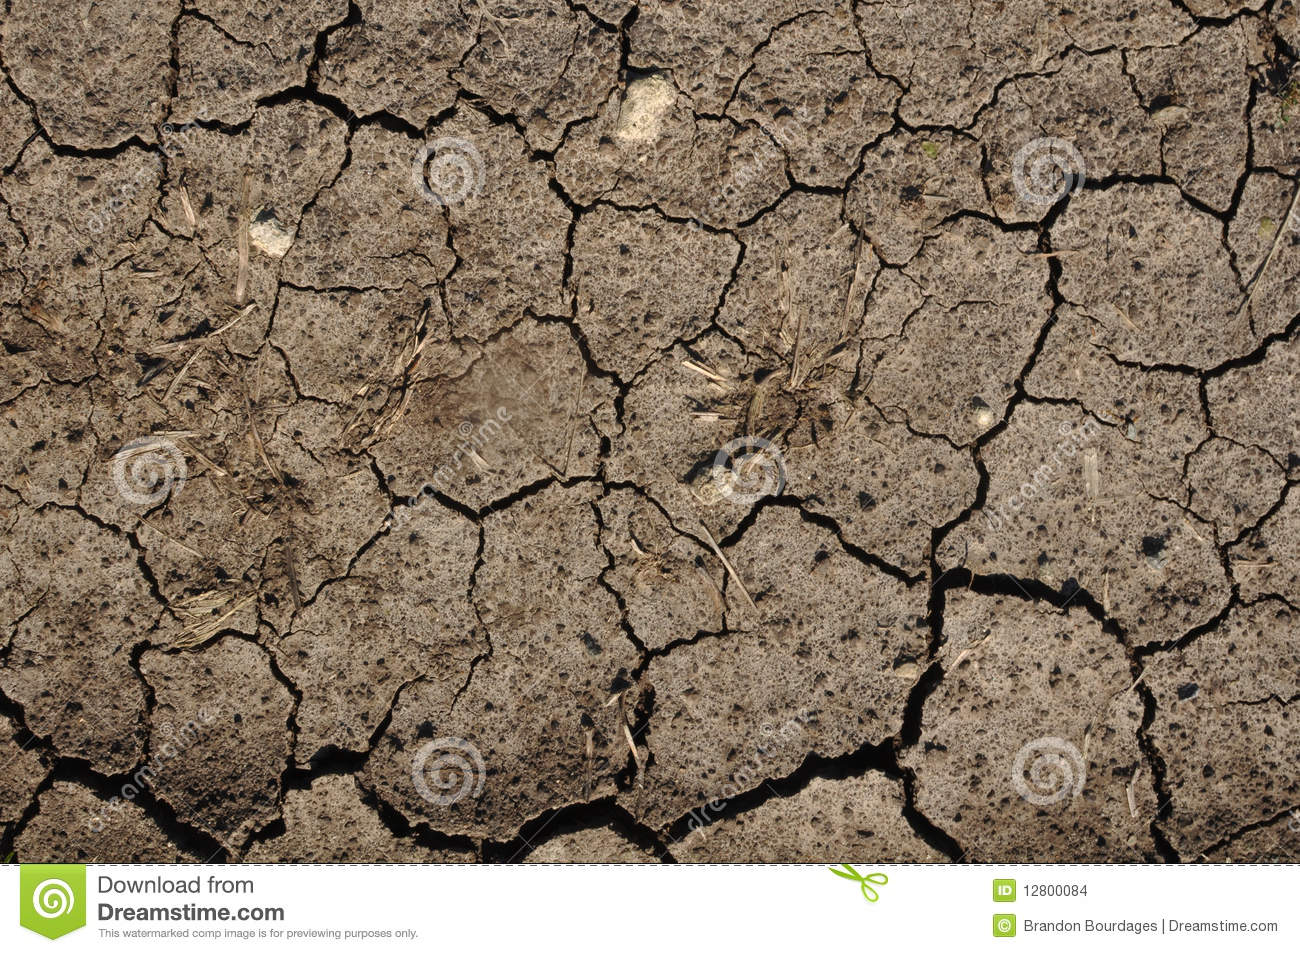 Brown Cracked Mud or Dirt used as a Background Cracked Dirt Background